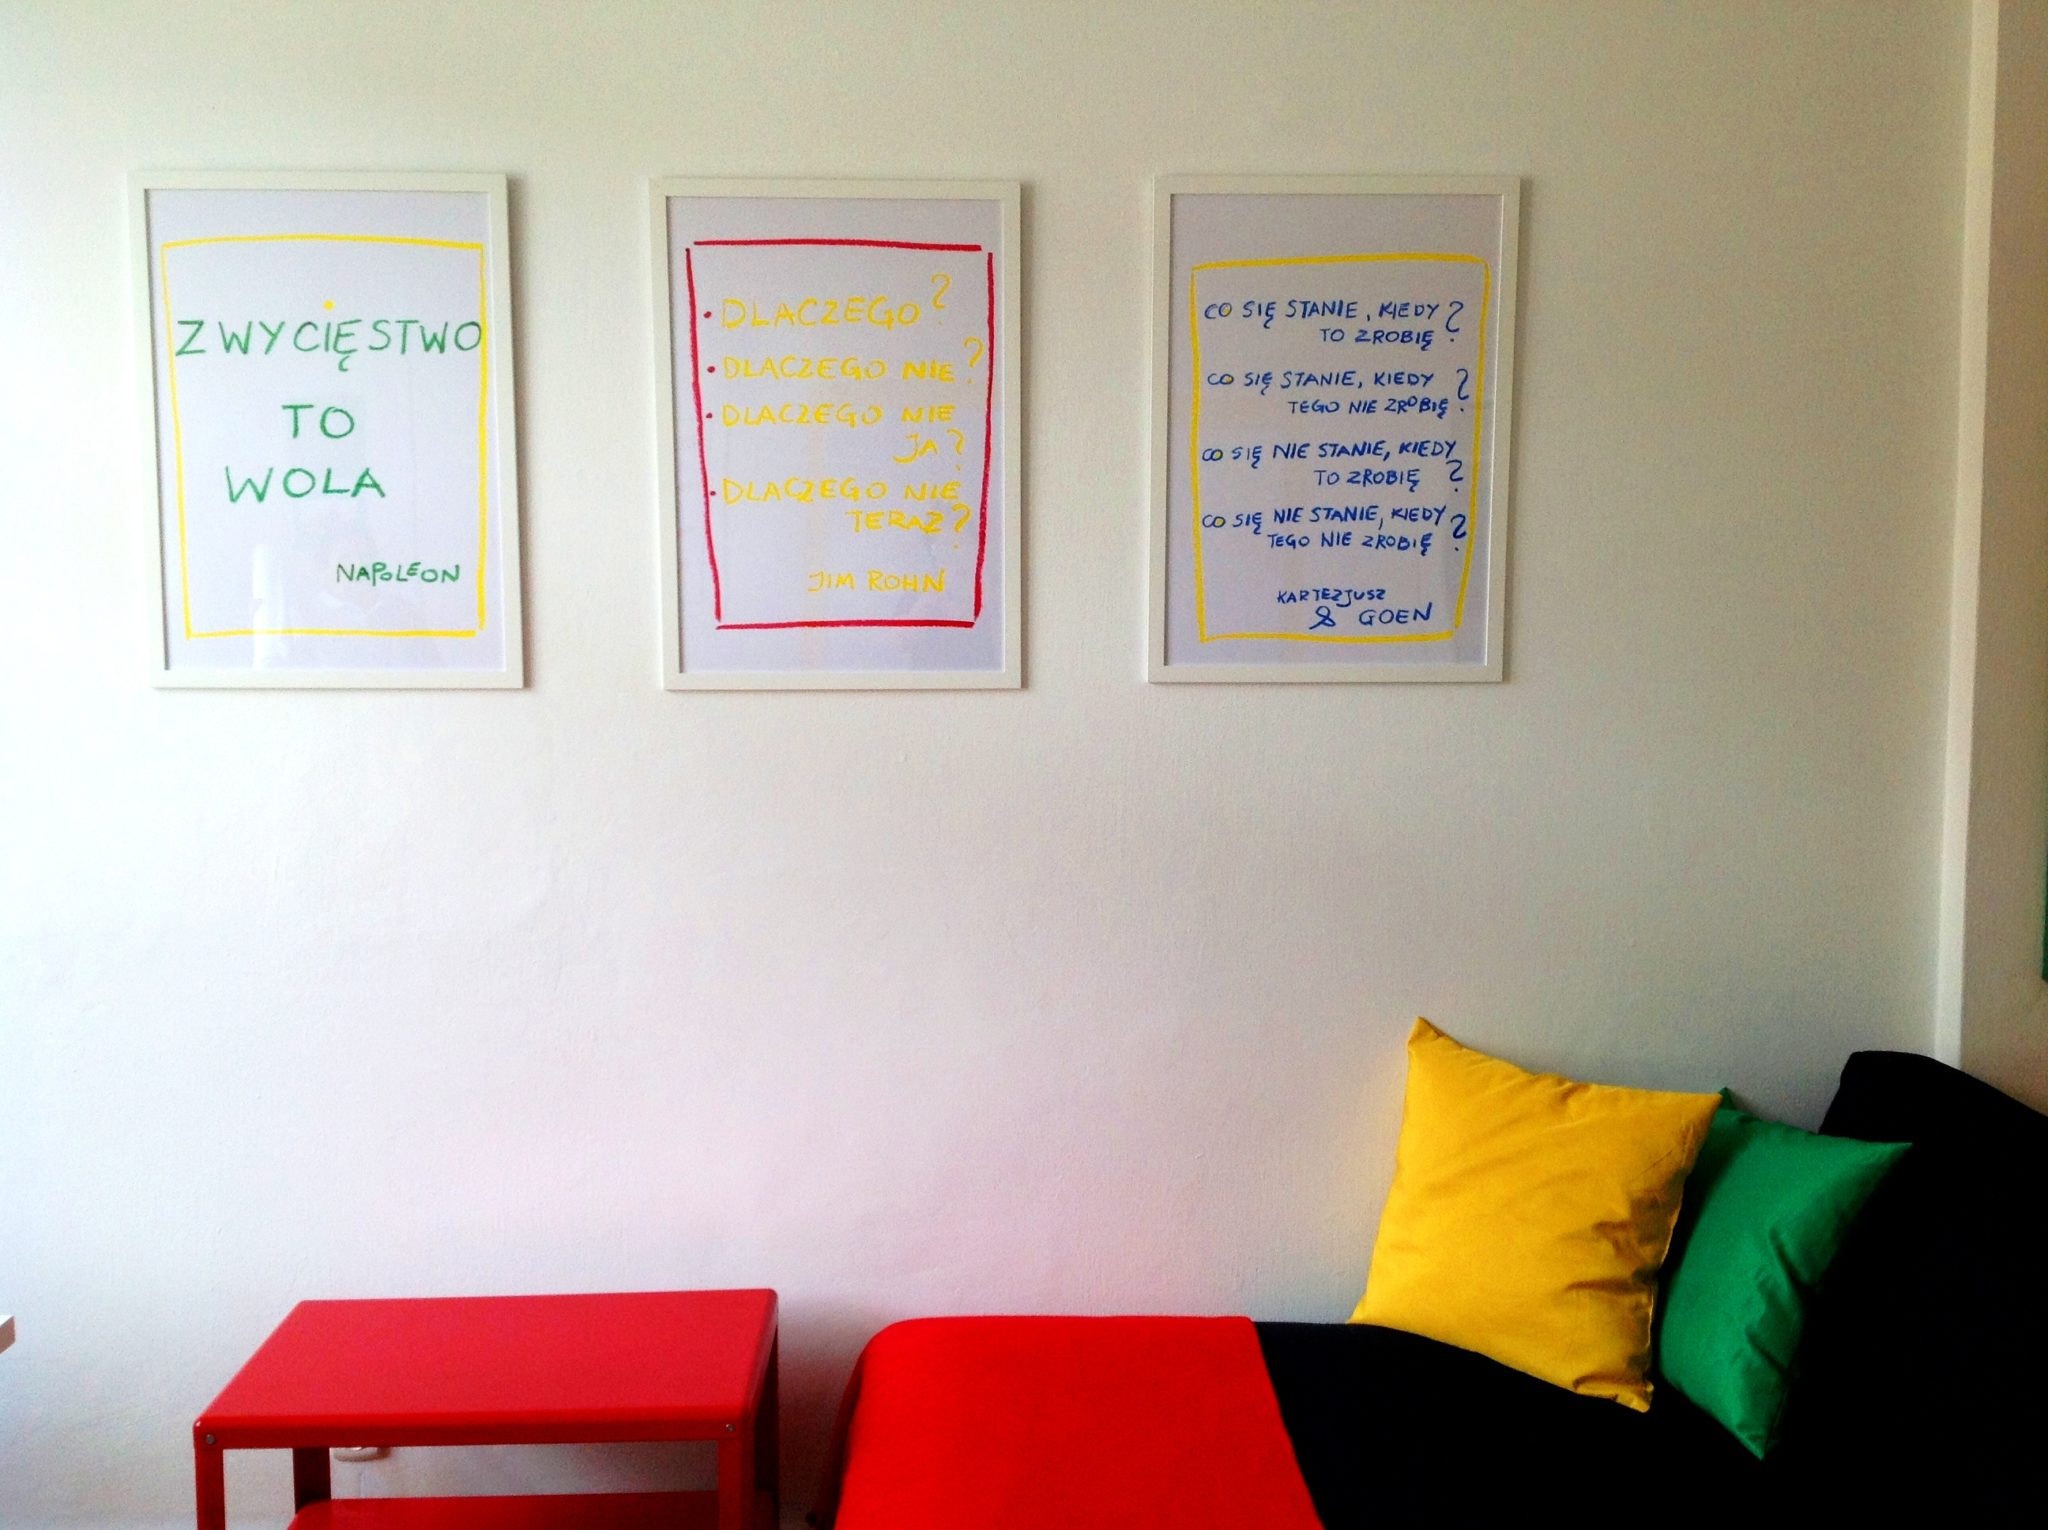 13 projekt wnetrza male kolorowe biuro interior design small colorful office google style forelementspl